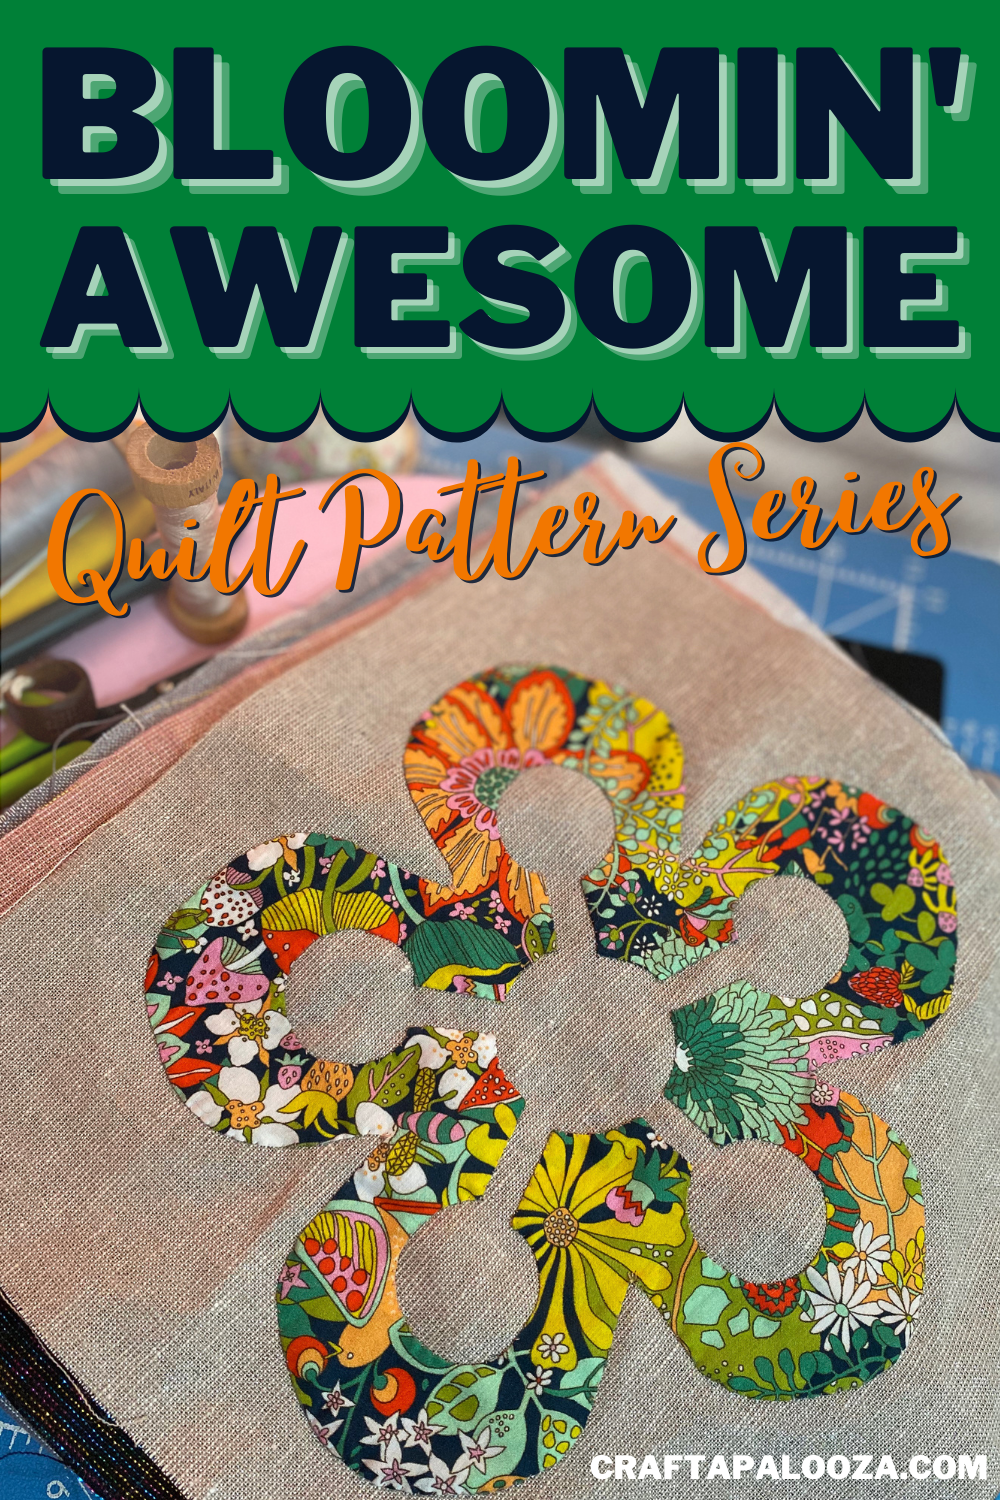 craftapalooza designs - bloomin awesome quilt pattern